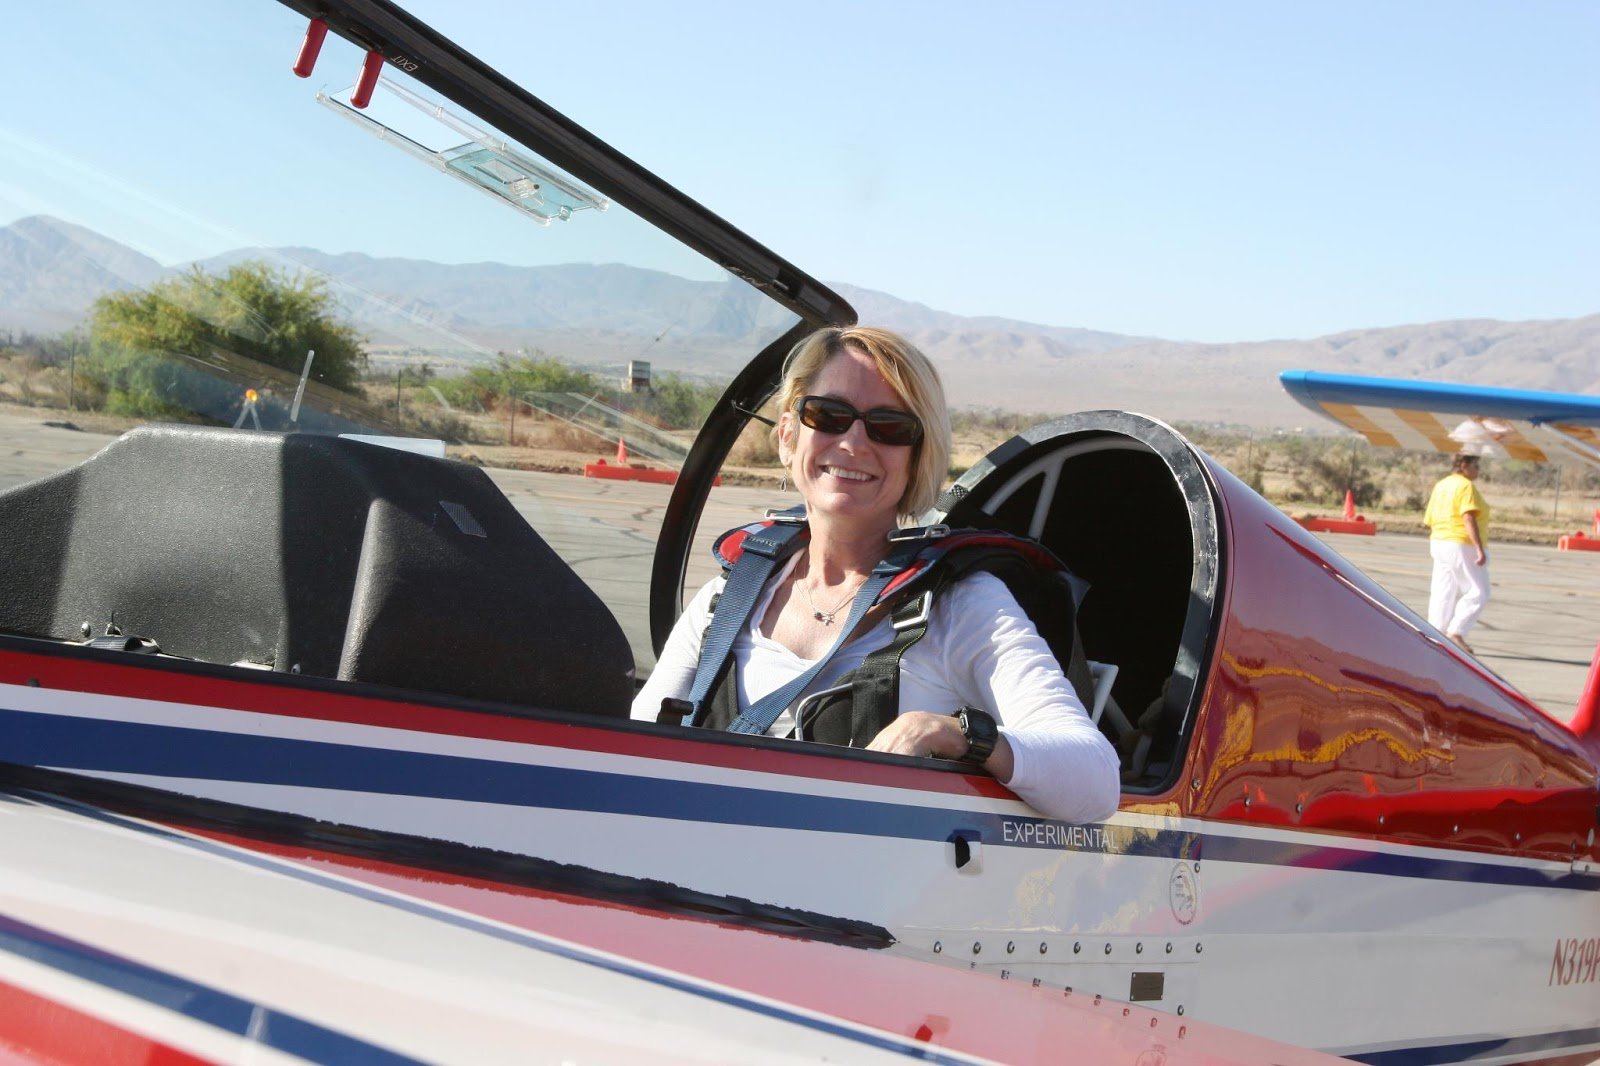 Kathryn's Report: Panzl S331E, registered to the pilot